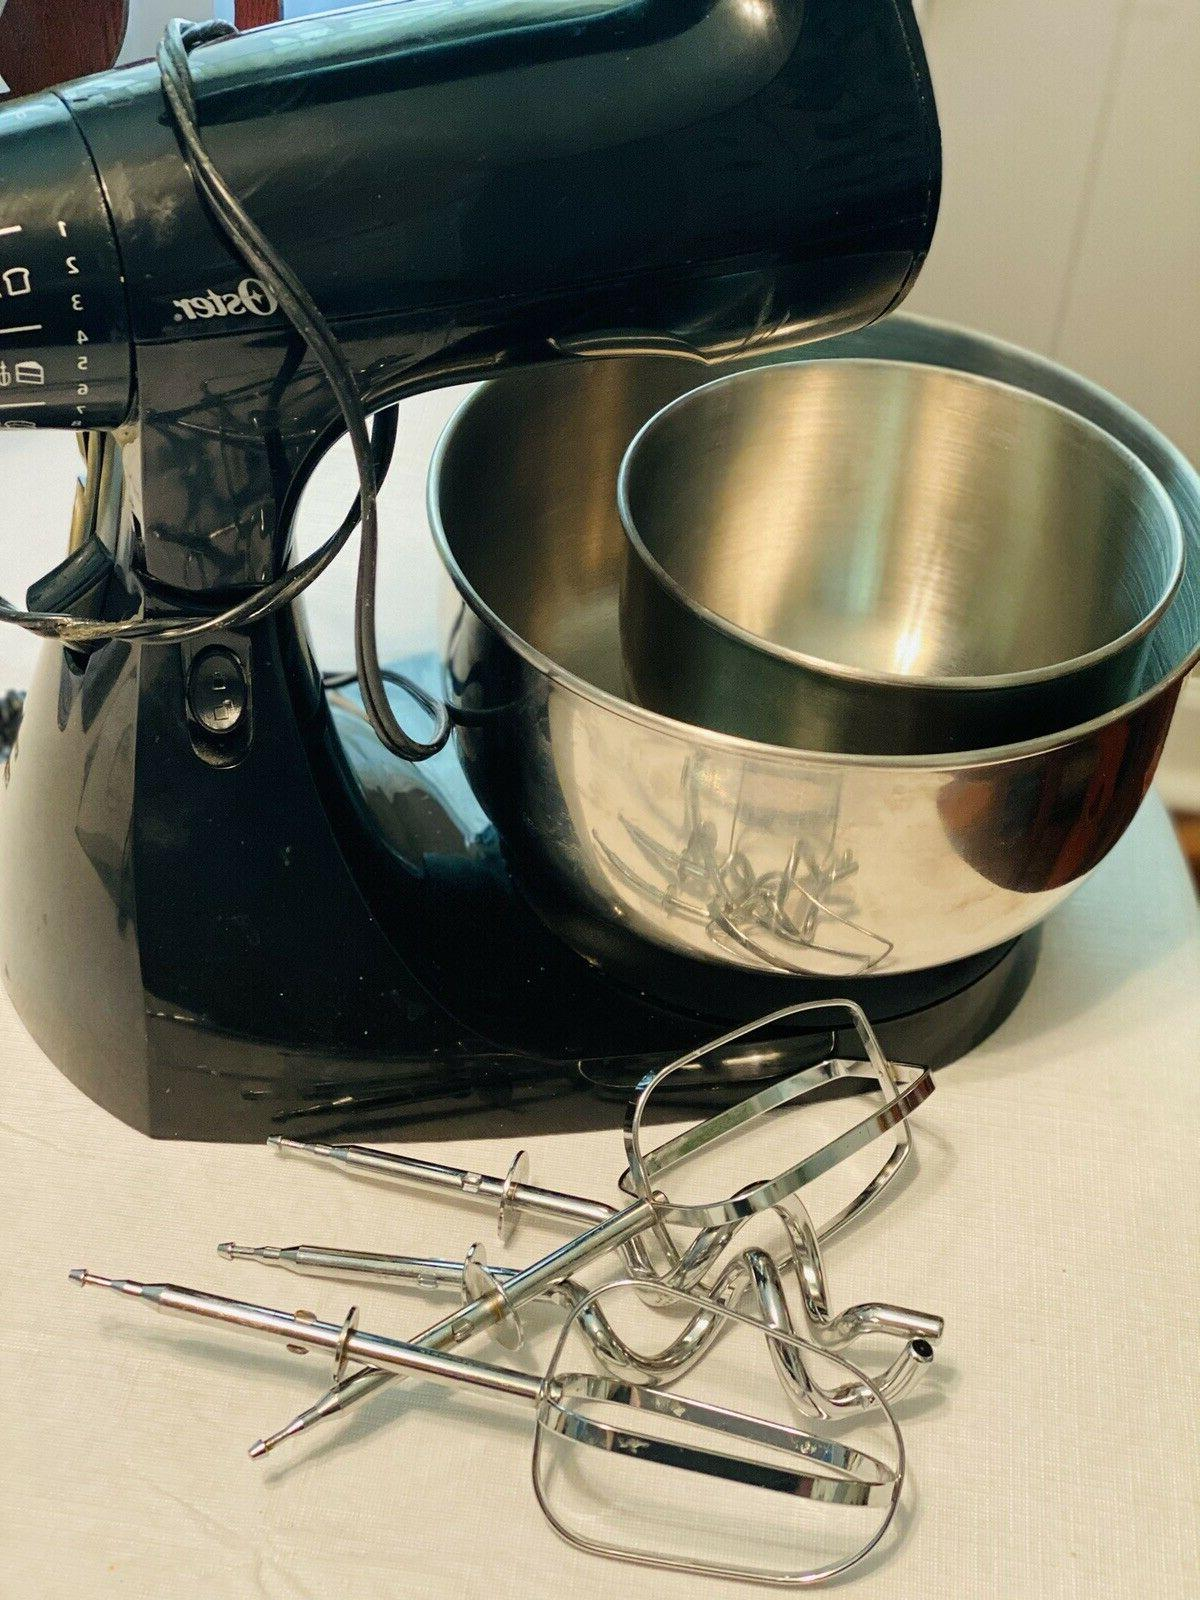 counter top mixer w bowls and attachments